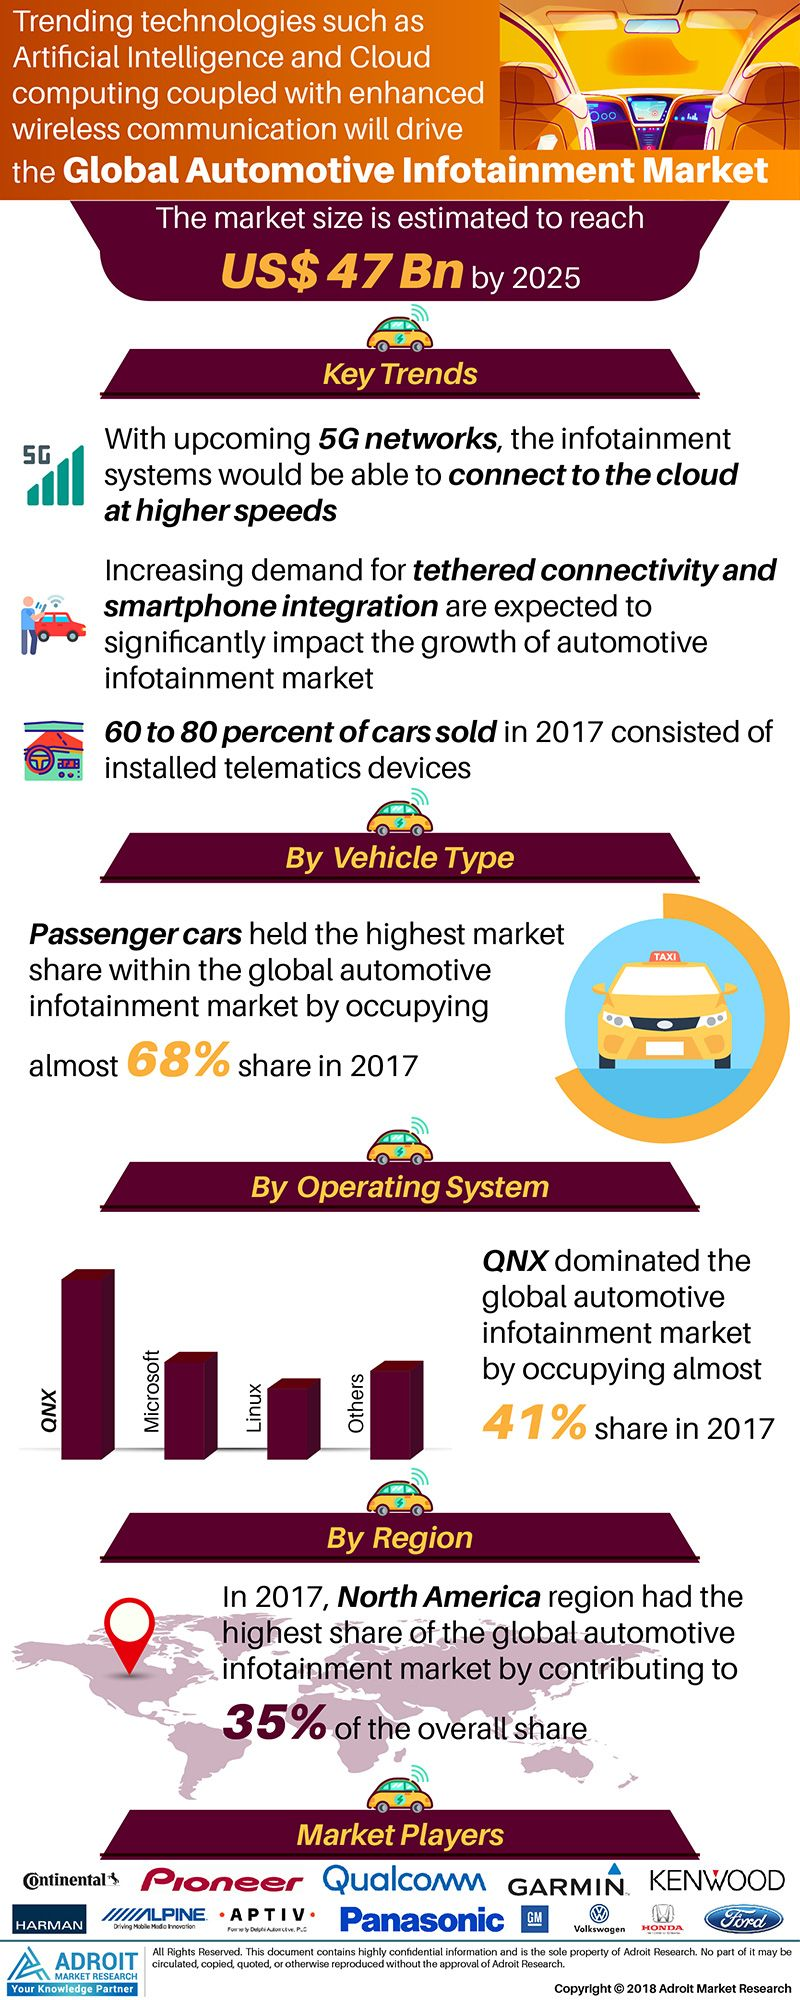 Automotive Infotainment Market Overview by Enhanced In